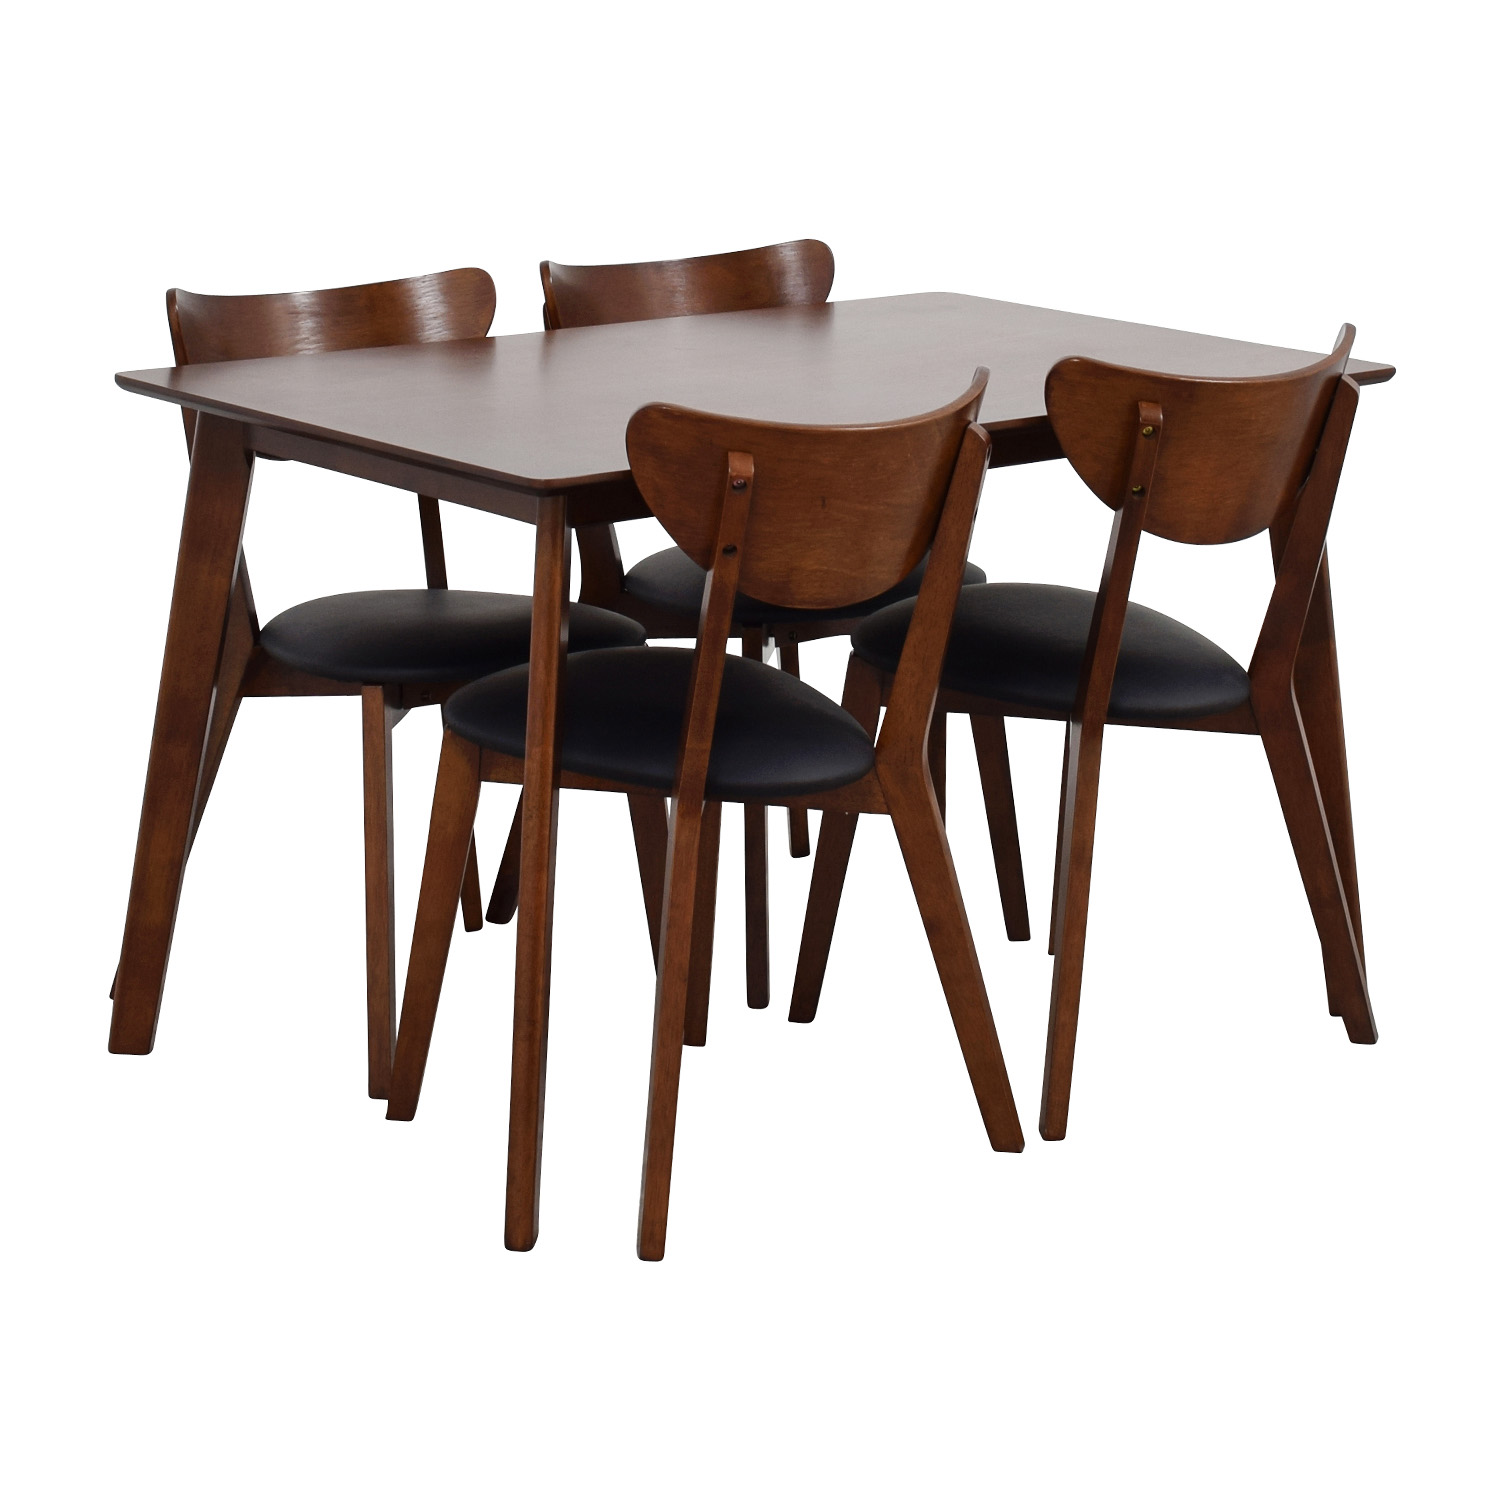 35 off wholesale interiors brown dining table set with for 4 chair dining table